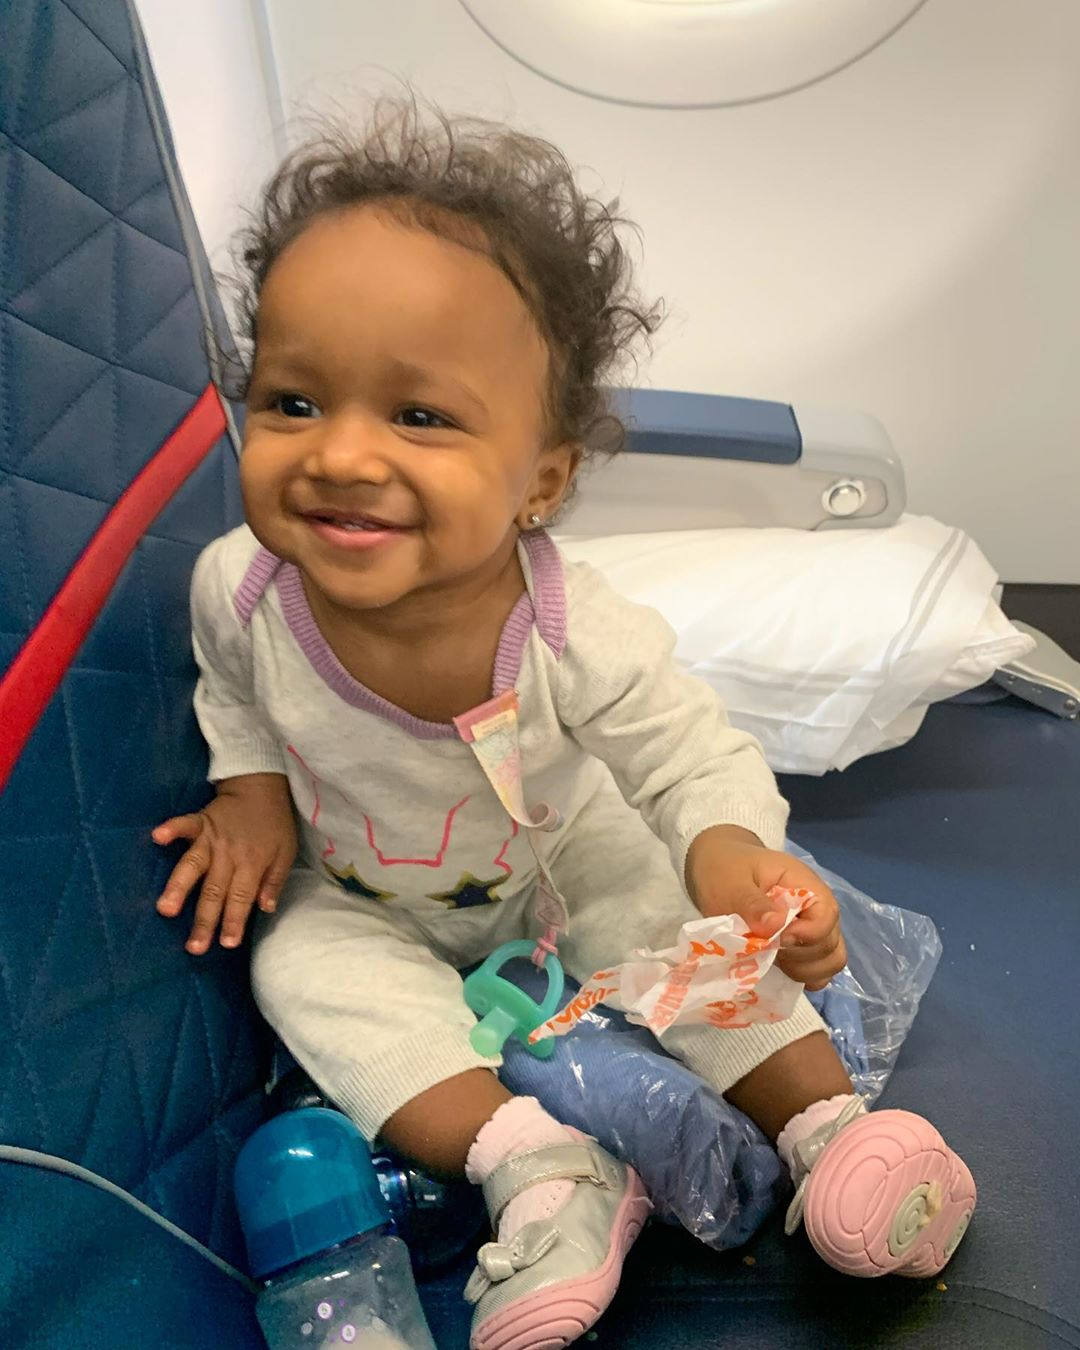 Kenya Moore's Video Featuring Her Baby Girl, Brooklyn Daly Make Fans Smile - See The Gorgeous Ladies